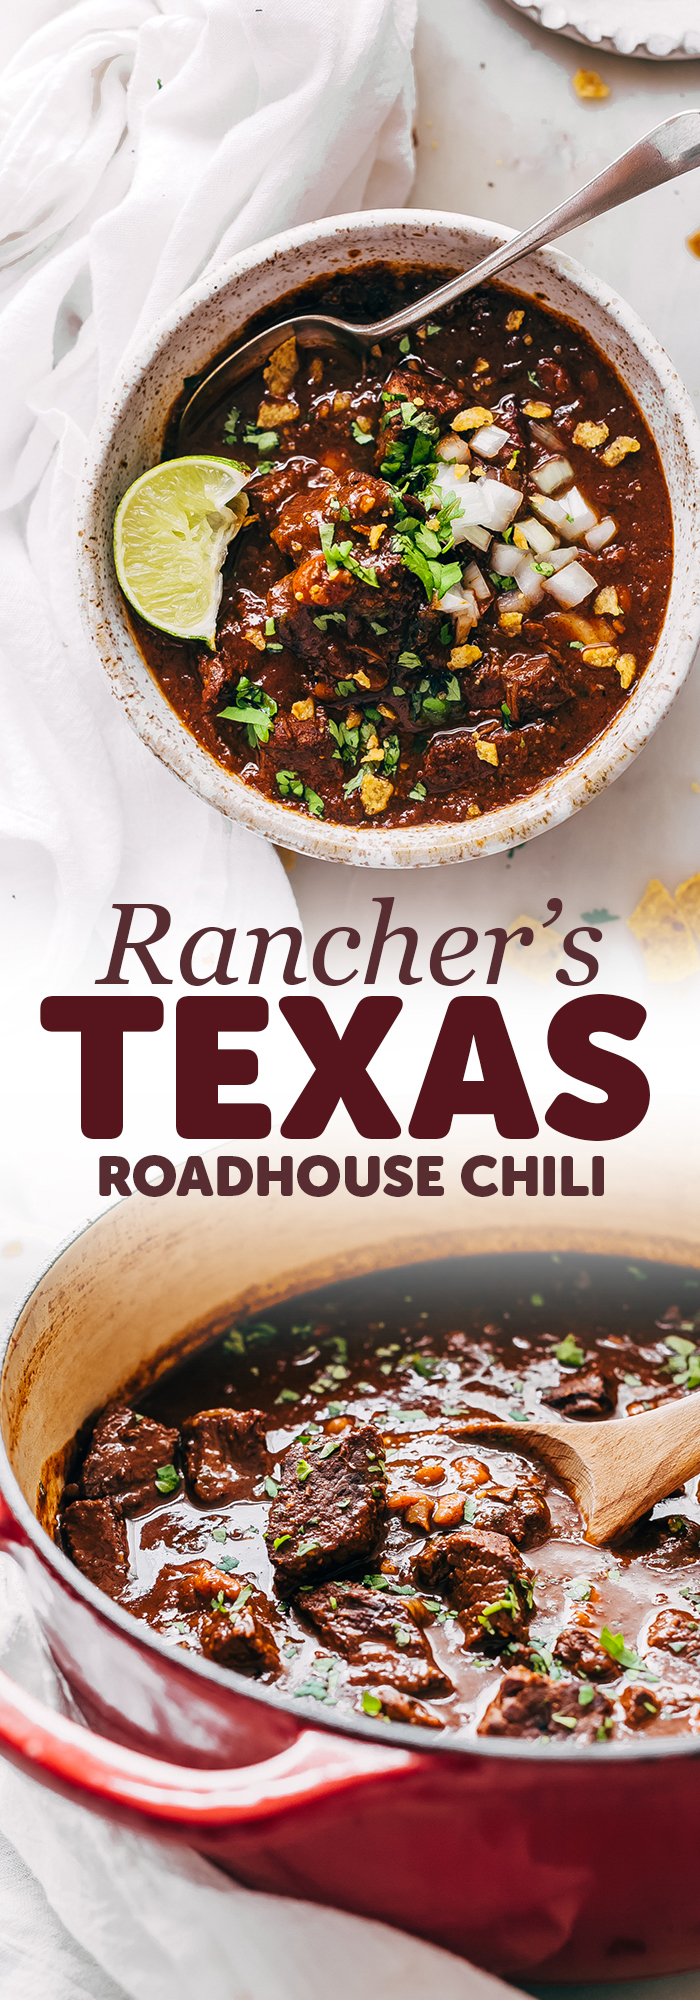 Rancher's Texas Chili (Chili con Carne) - Learn how to make texas chili or chili con carne! This is an easy recipe that uses chuck roast rather that ground beef and is so hearty and filling! #texaschili #chilirecipe #heartychili #homemadechili #chuckroastchili | Littlespicejar.com